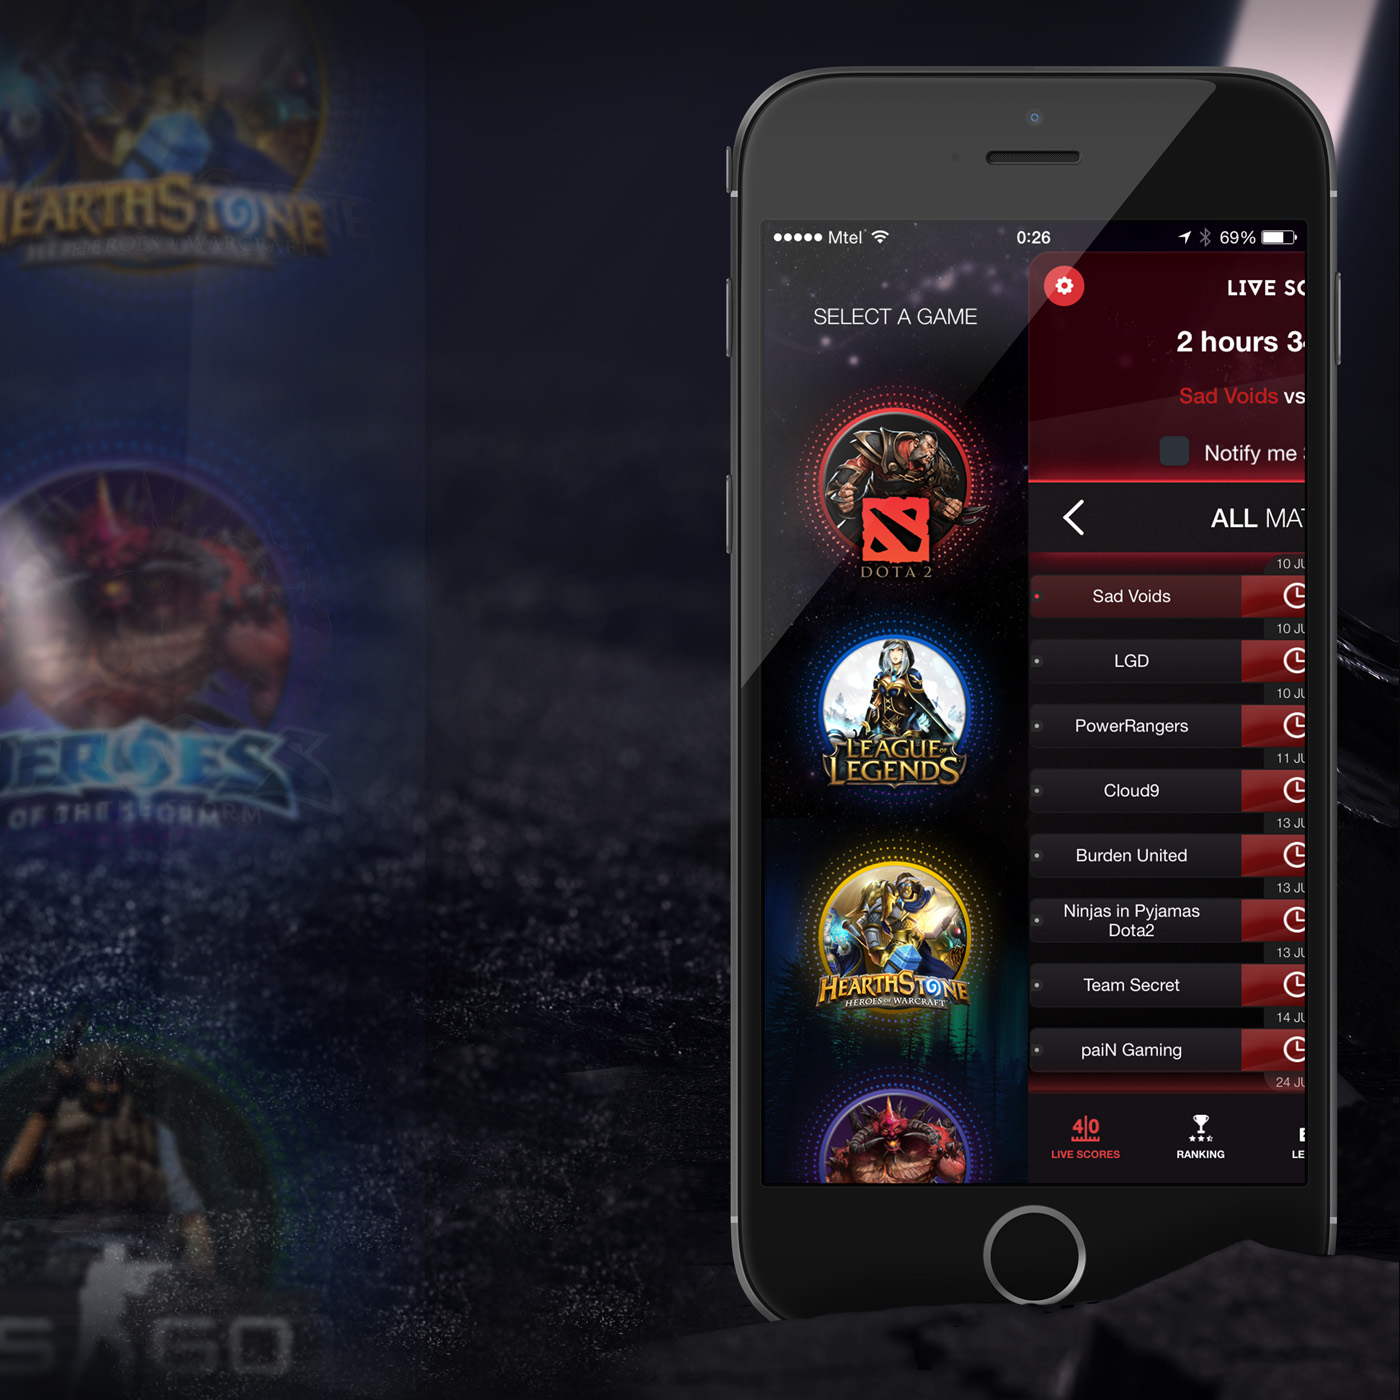 GoodGame is mobile app that covers live match scores  history and     The app includes players and teams in the top leagues for Dota 2  League of  Legends  LOL   CS GO  Hearthstone